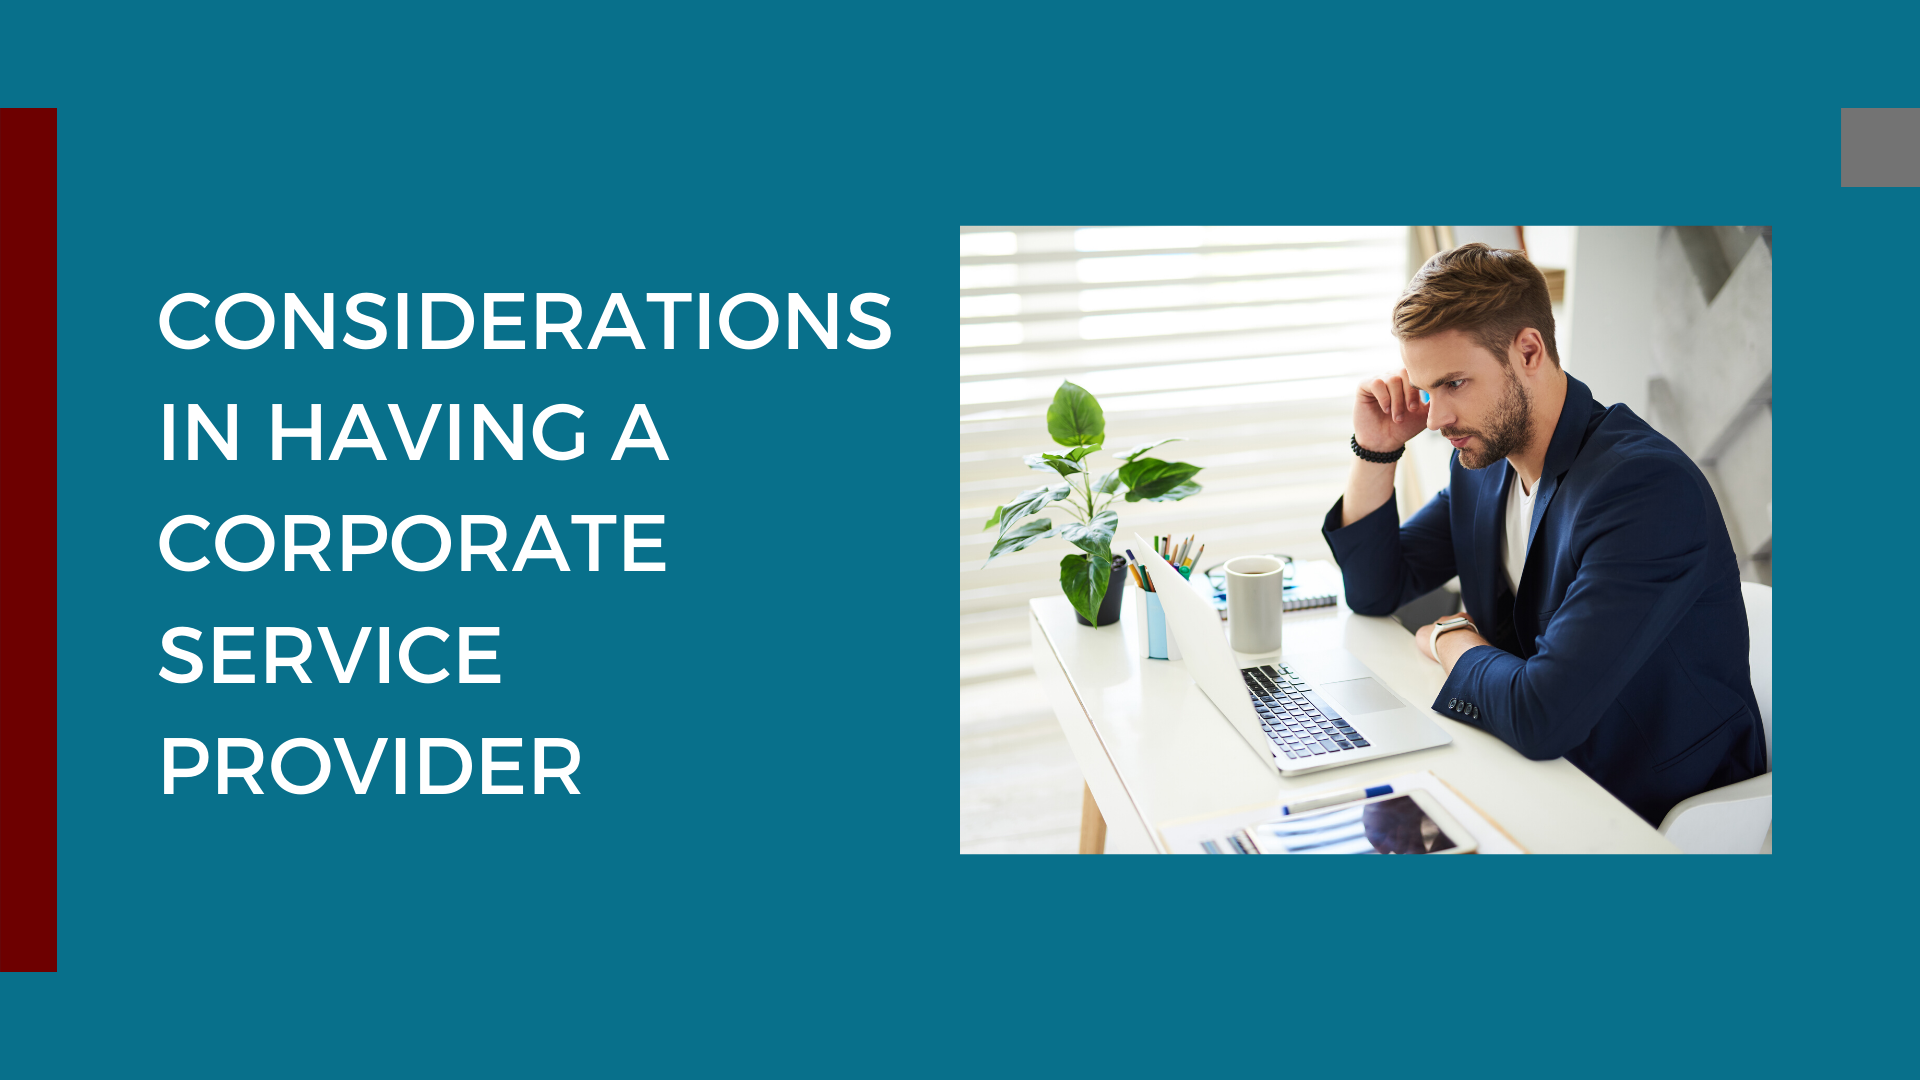 Considerations in Having a Corporate Service Provider